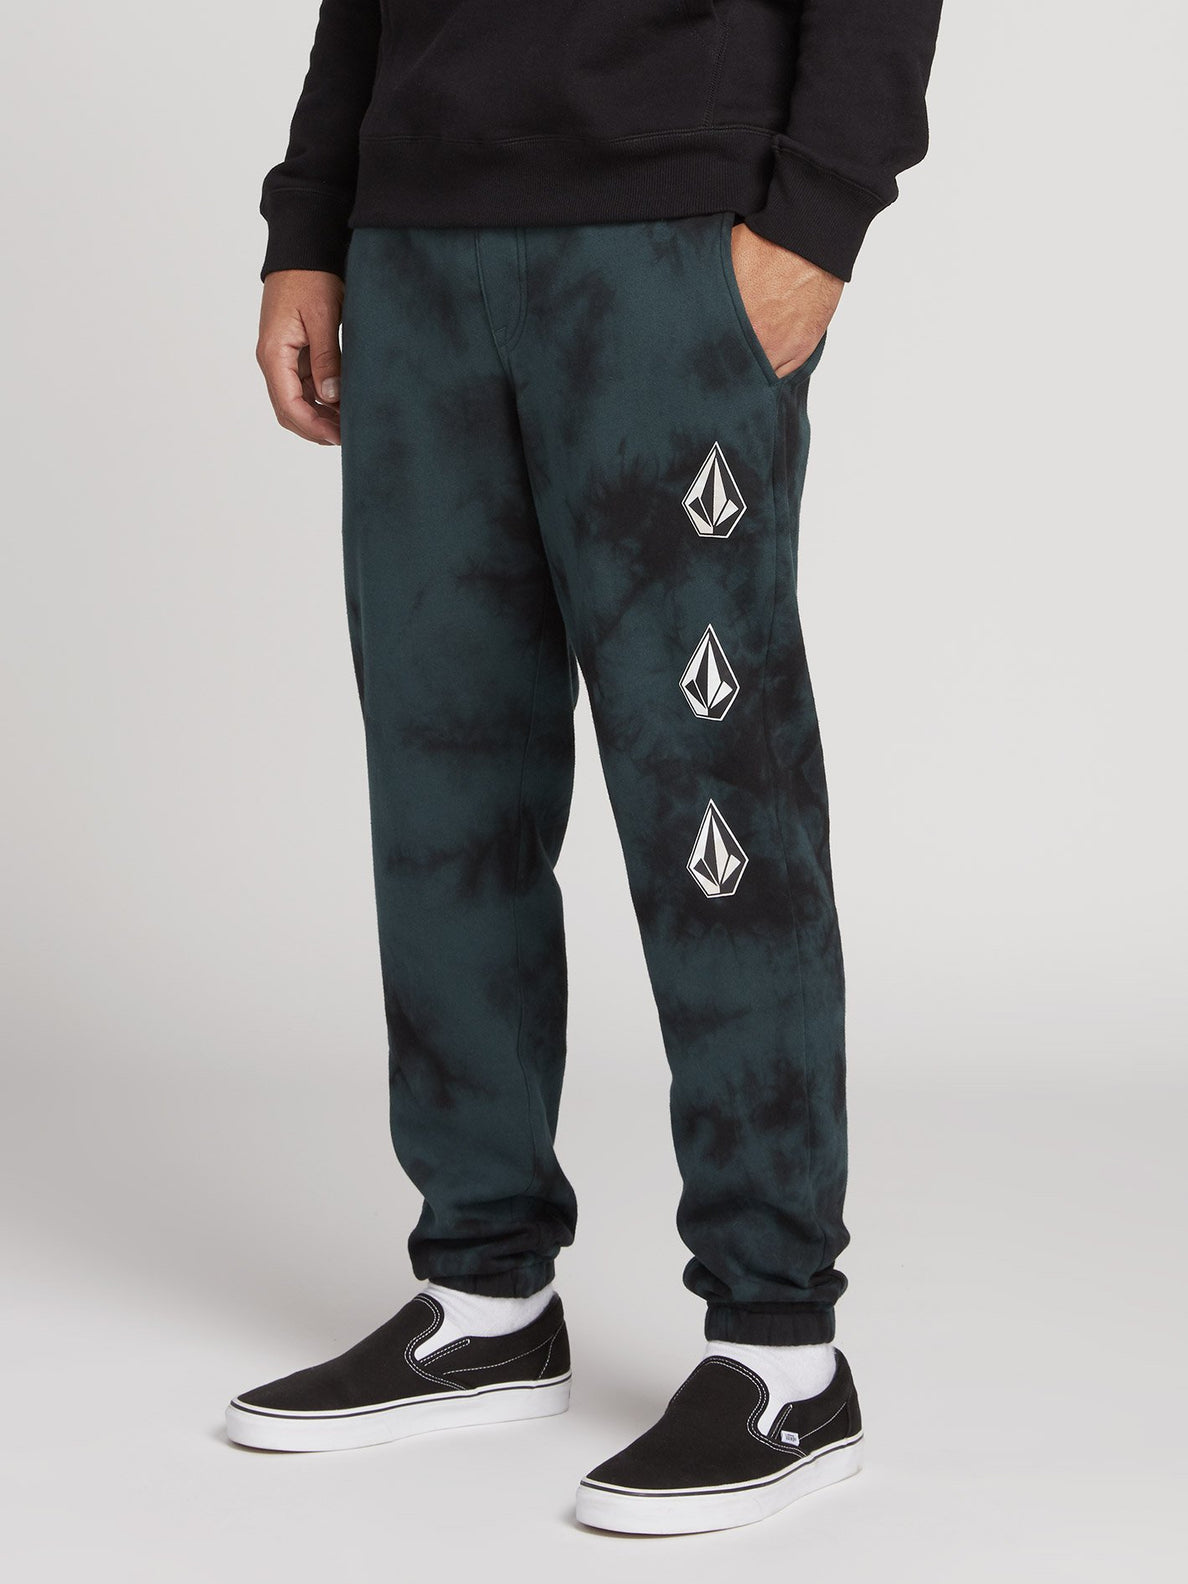 Deadly Stones Pant - Evergreen (A1231904_EVR) [1]